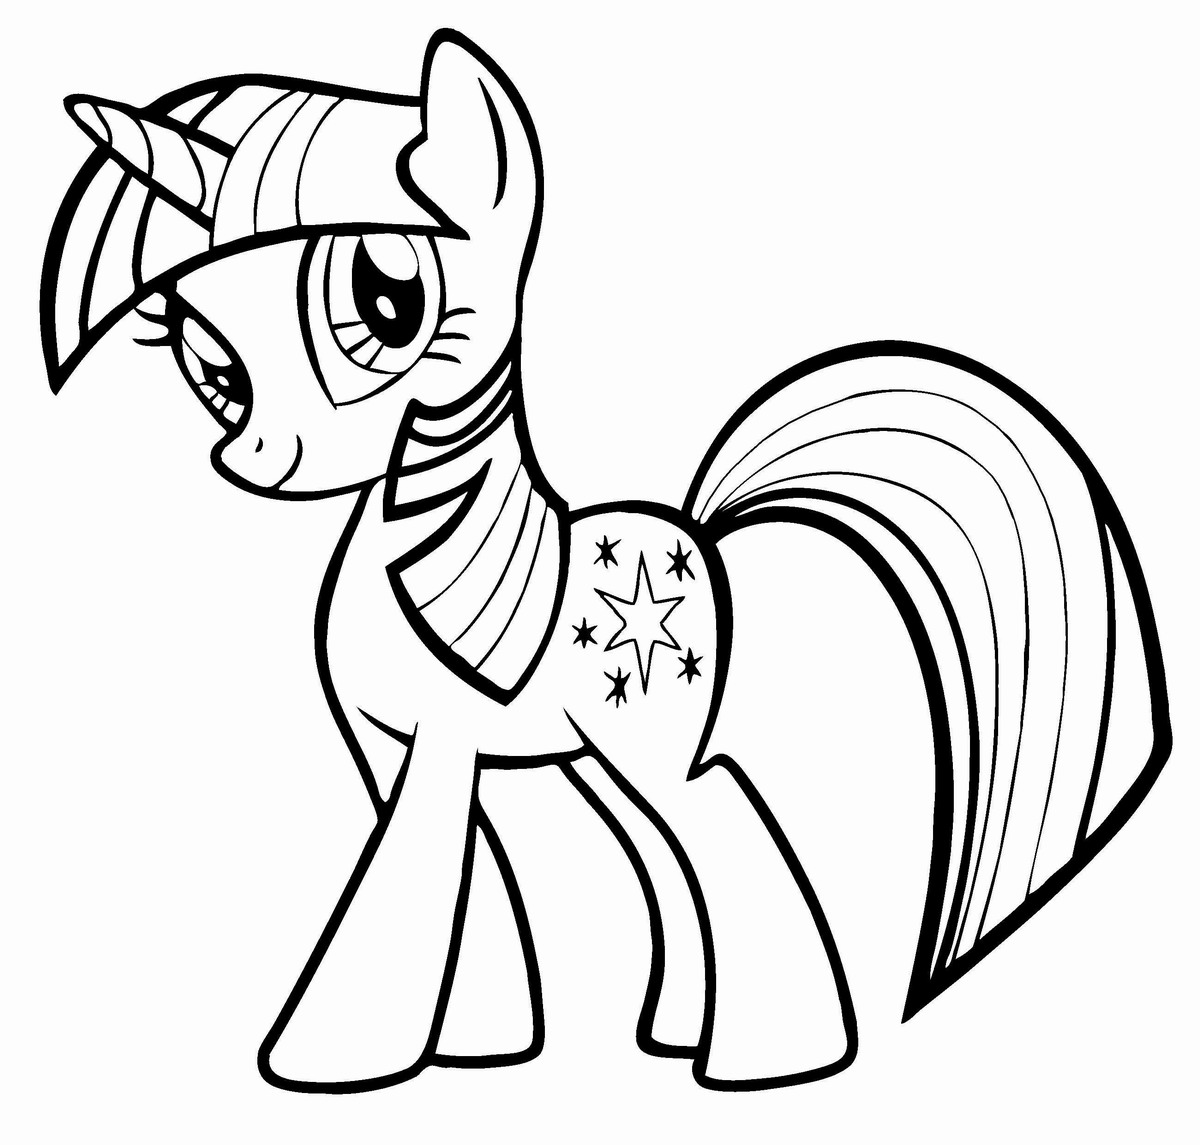 mlp coloring book my little pony coloring pages applejack coloring book mlp